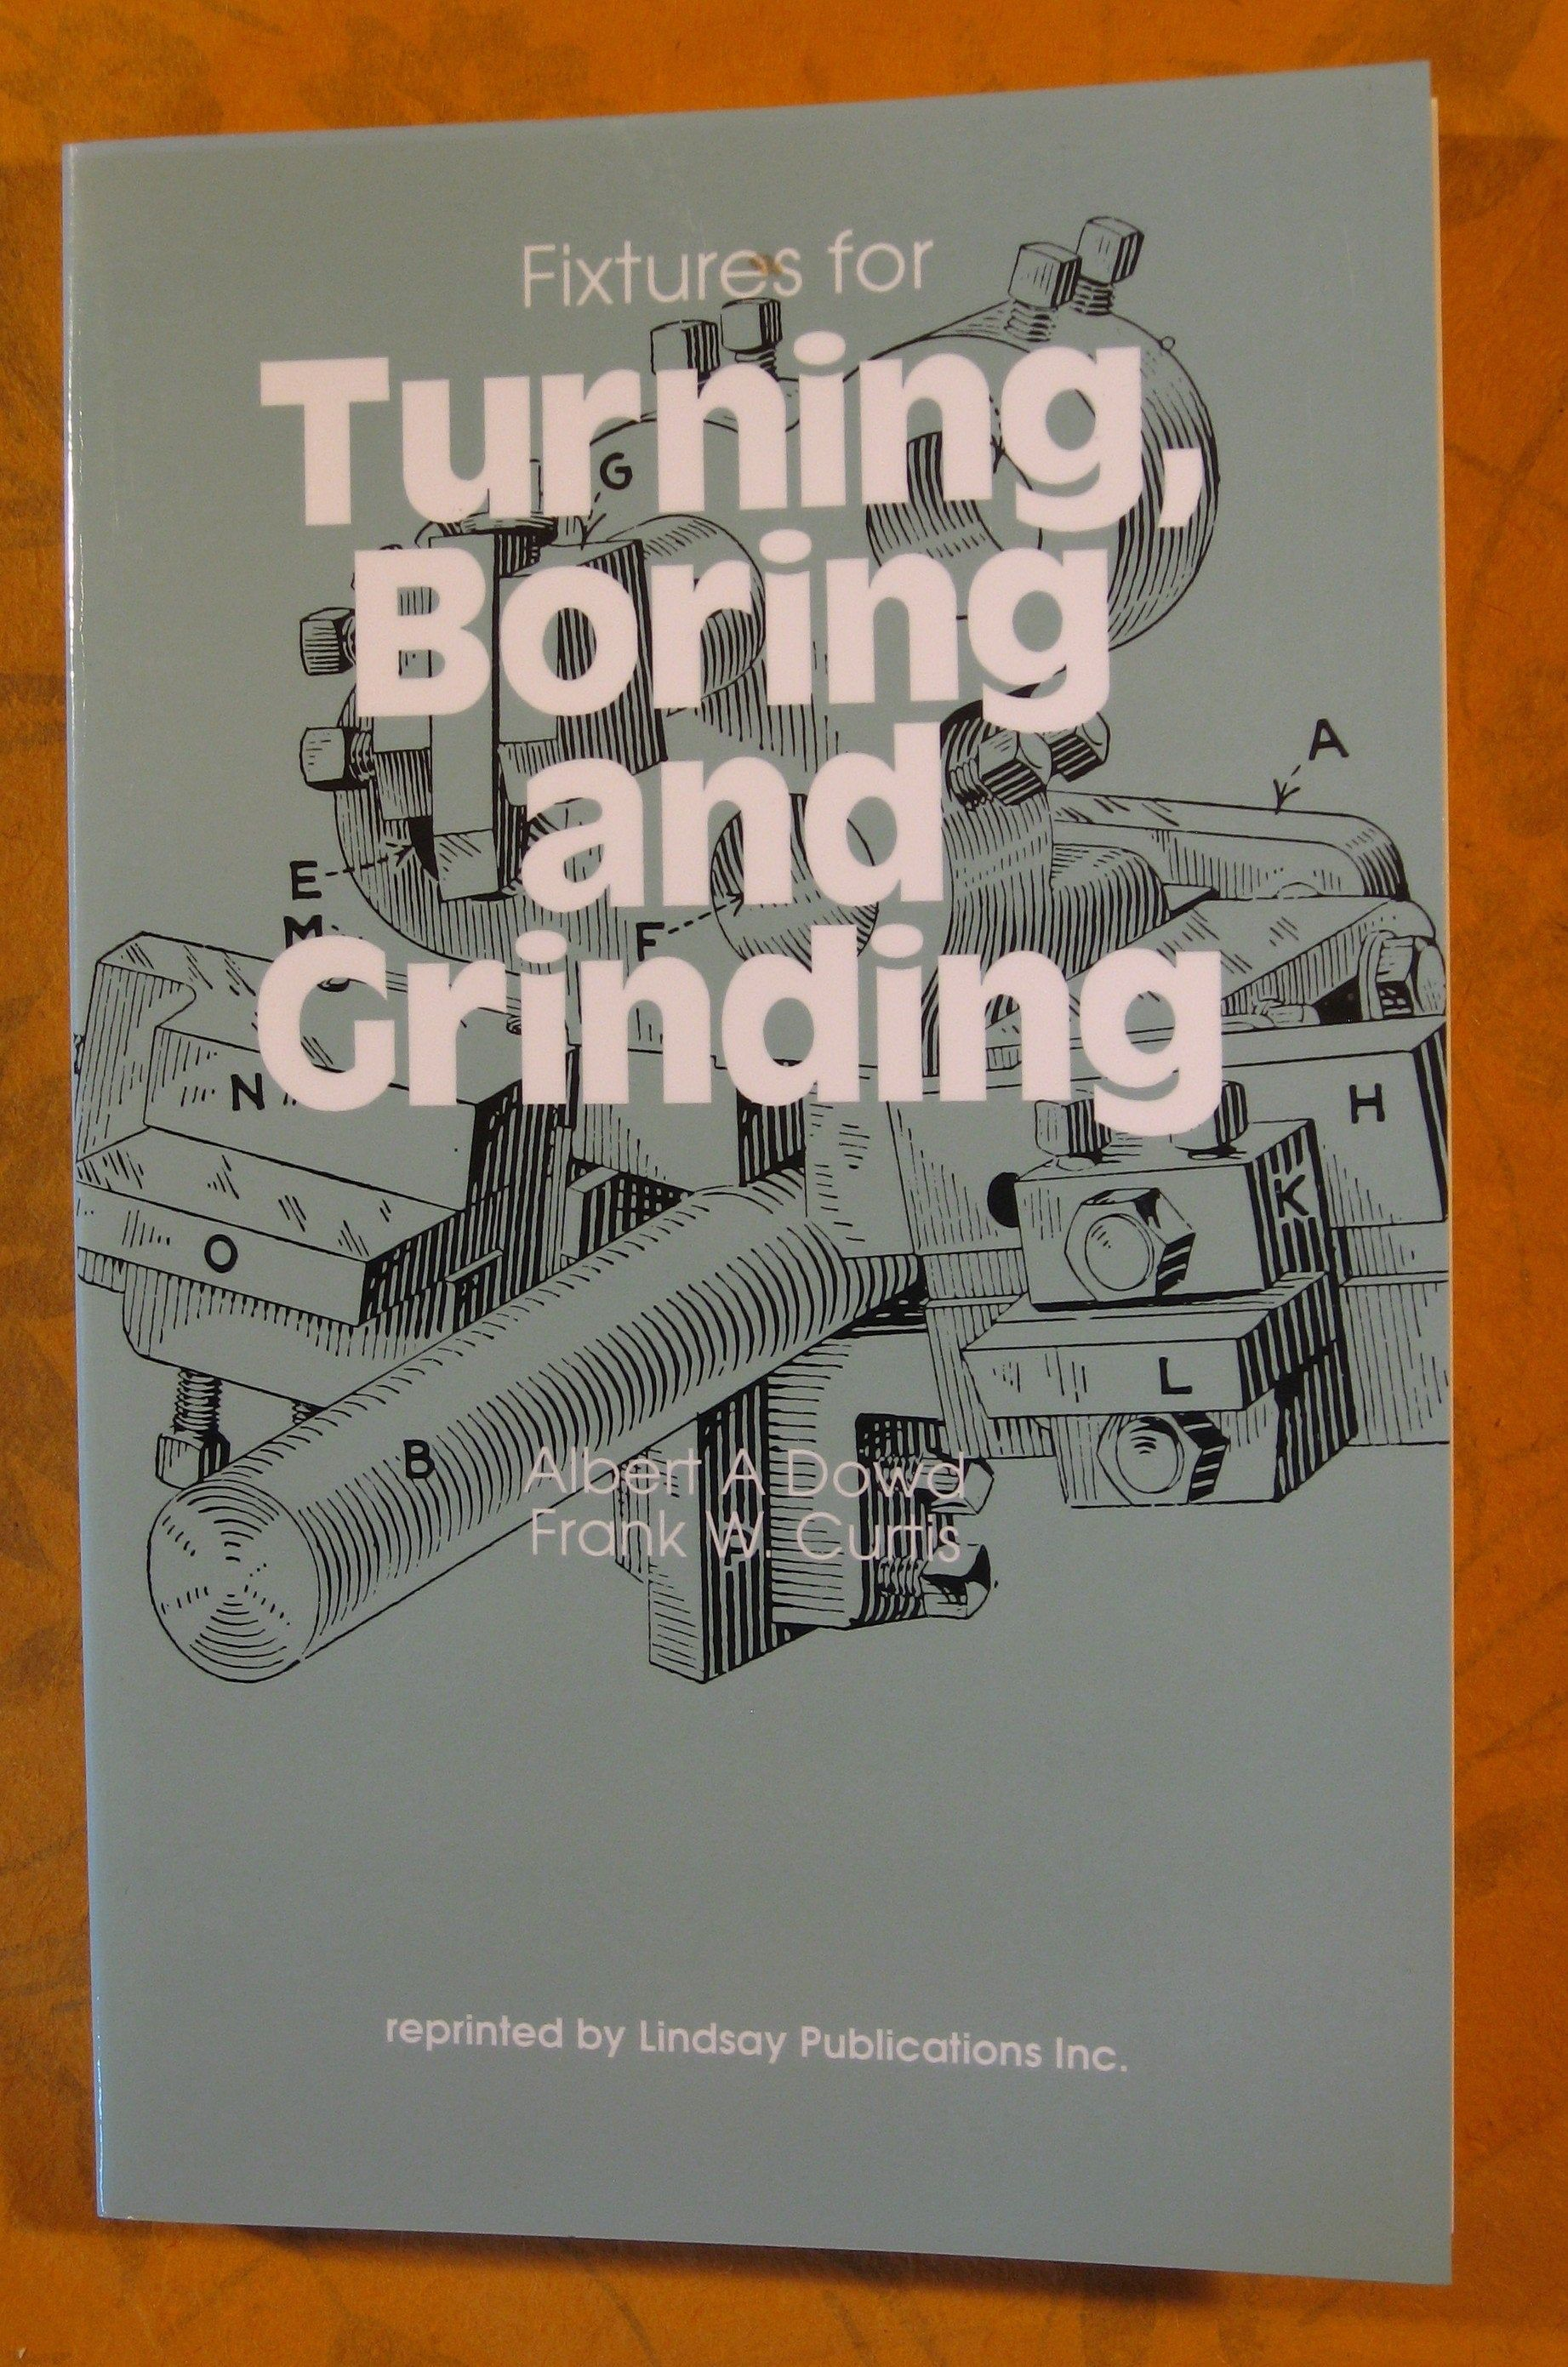 Fixtures for Turning, Boring and Grinding (Tool Engineering Series) by Pistilbooks on Etsy